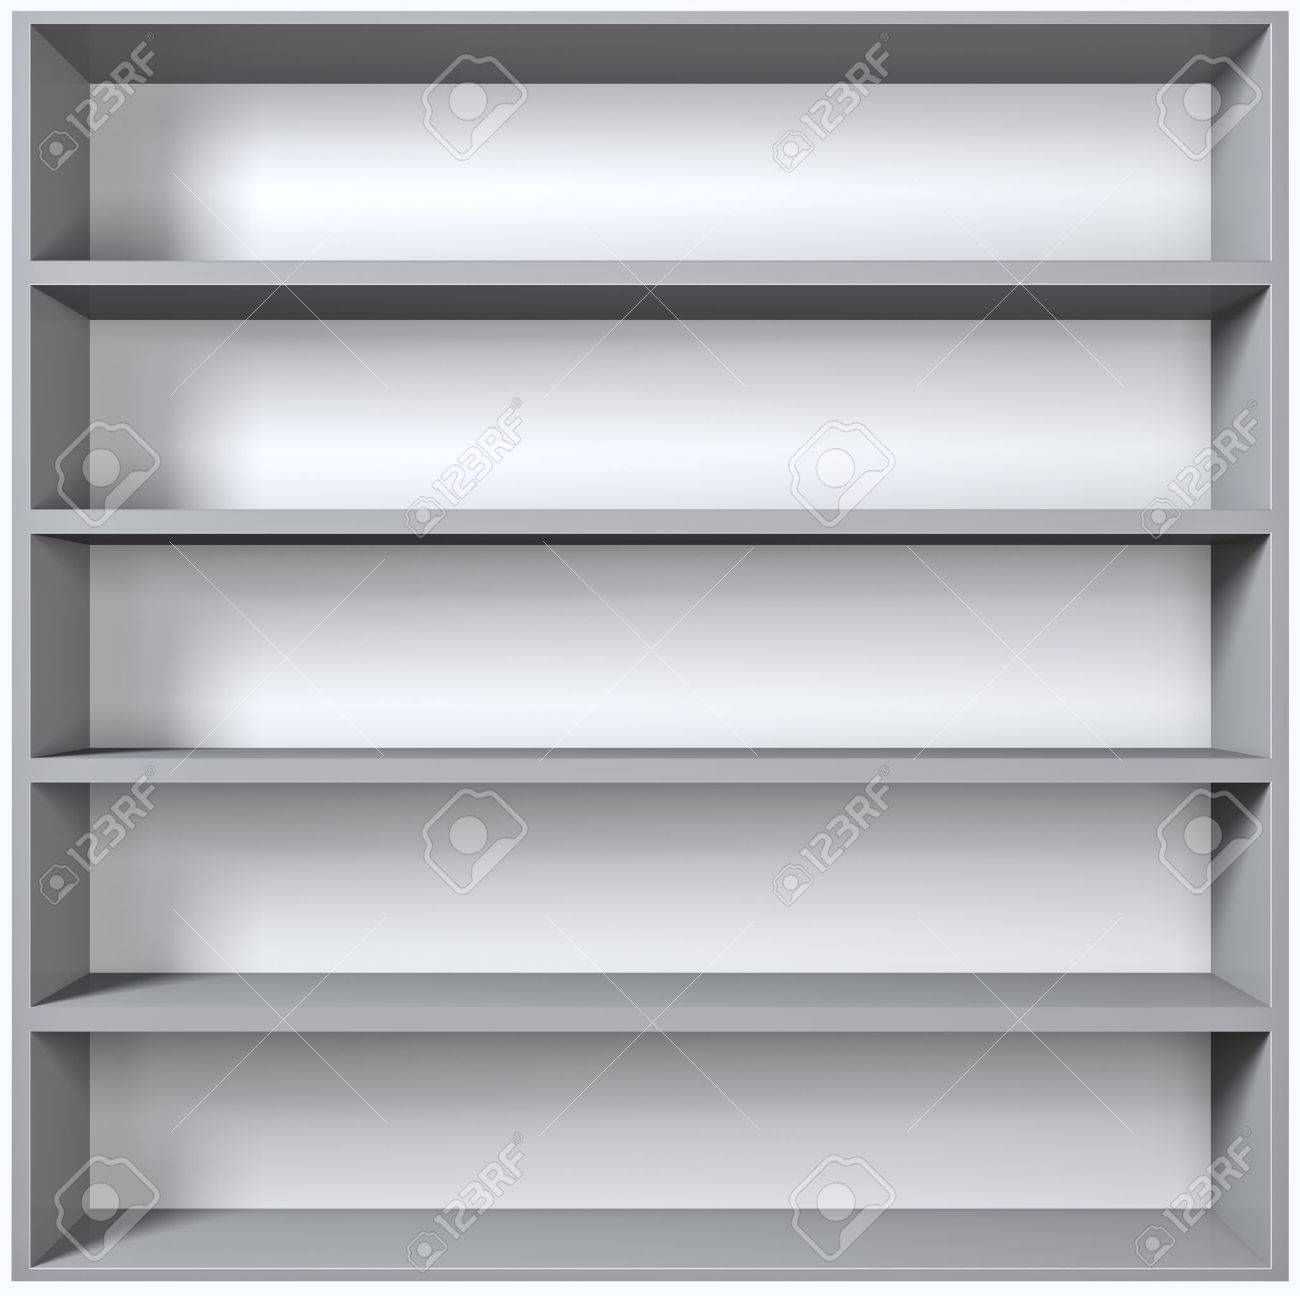 Grey wooden shelves with empty racks isolated on white background - 25027047